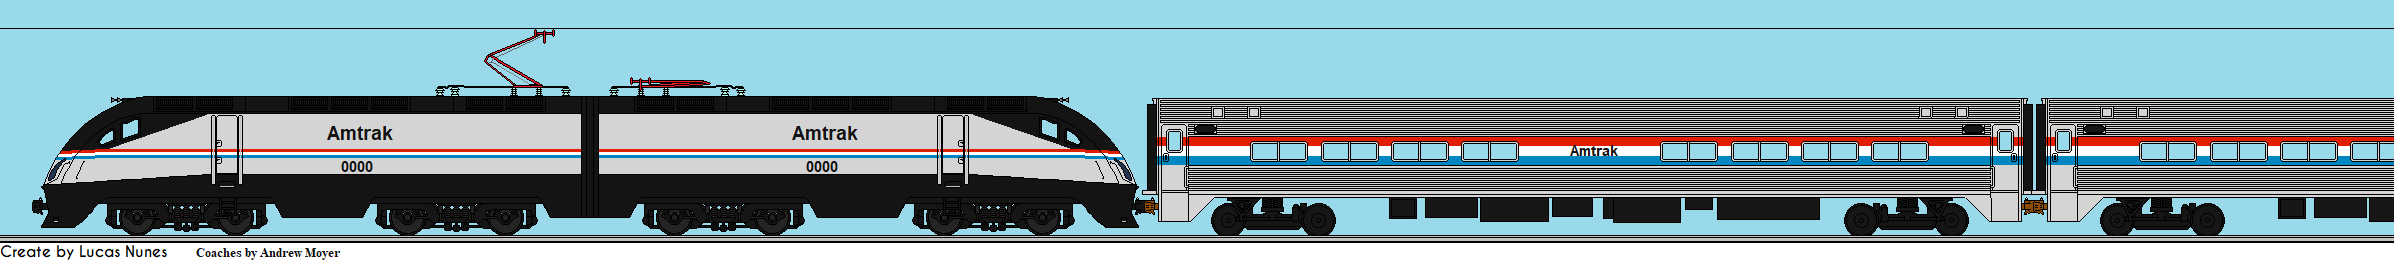 AXF-300 Amtrak P3.png